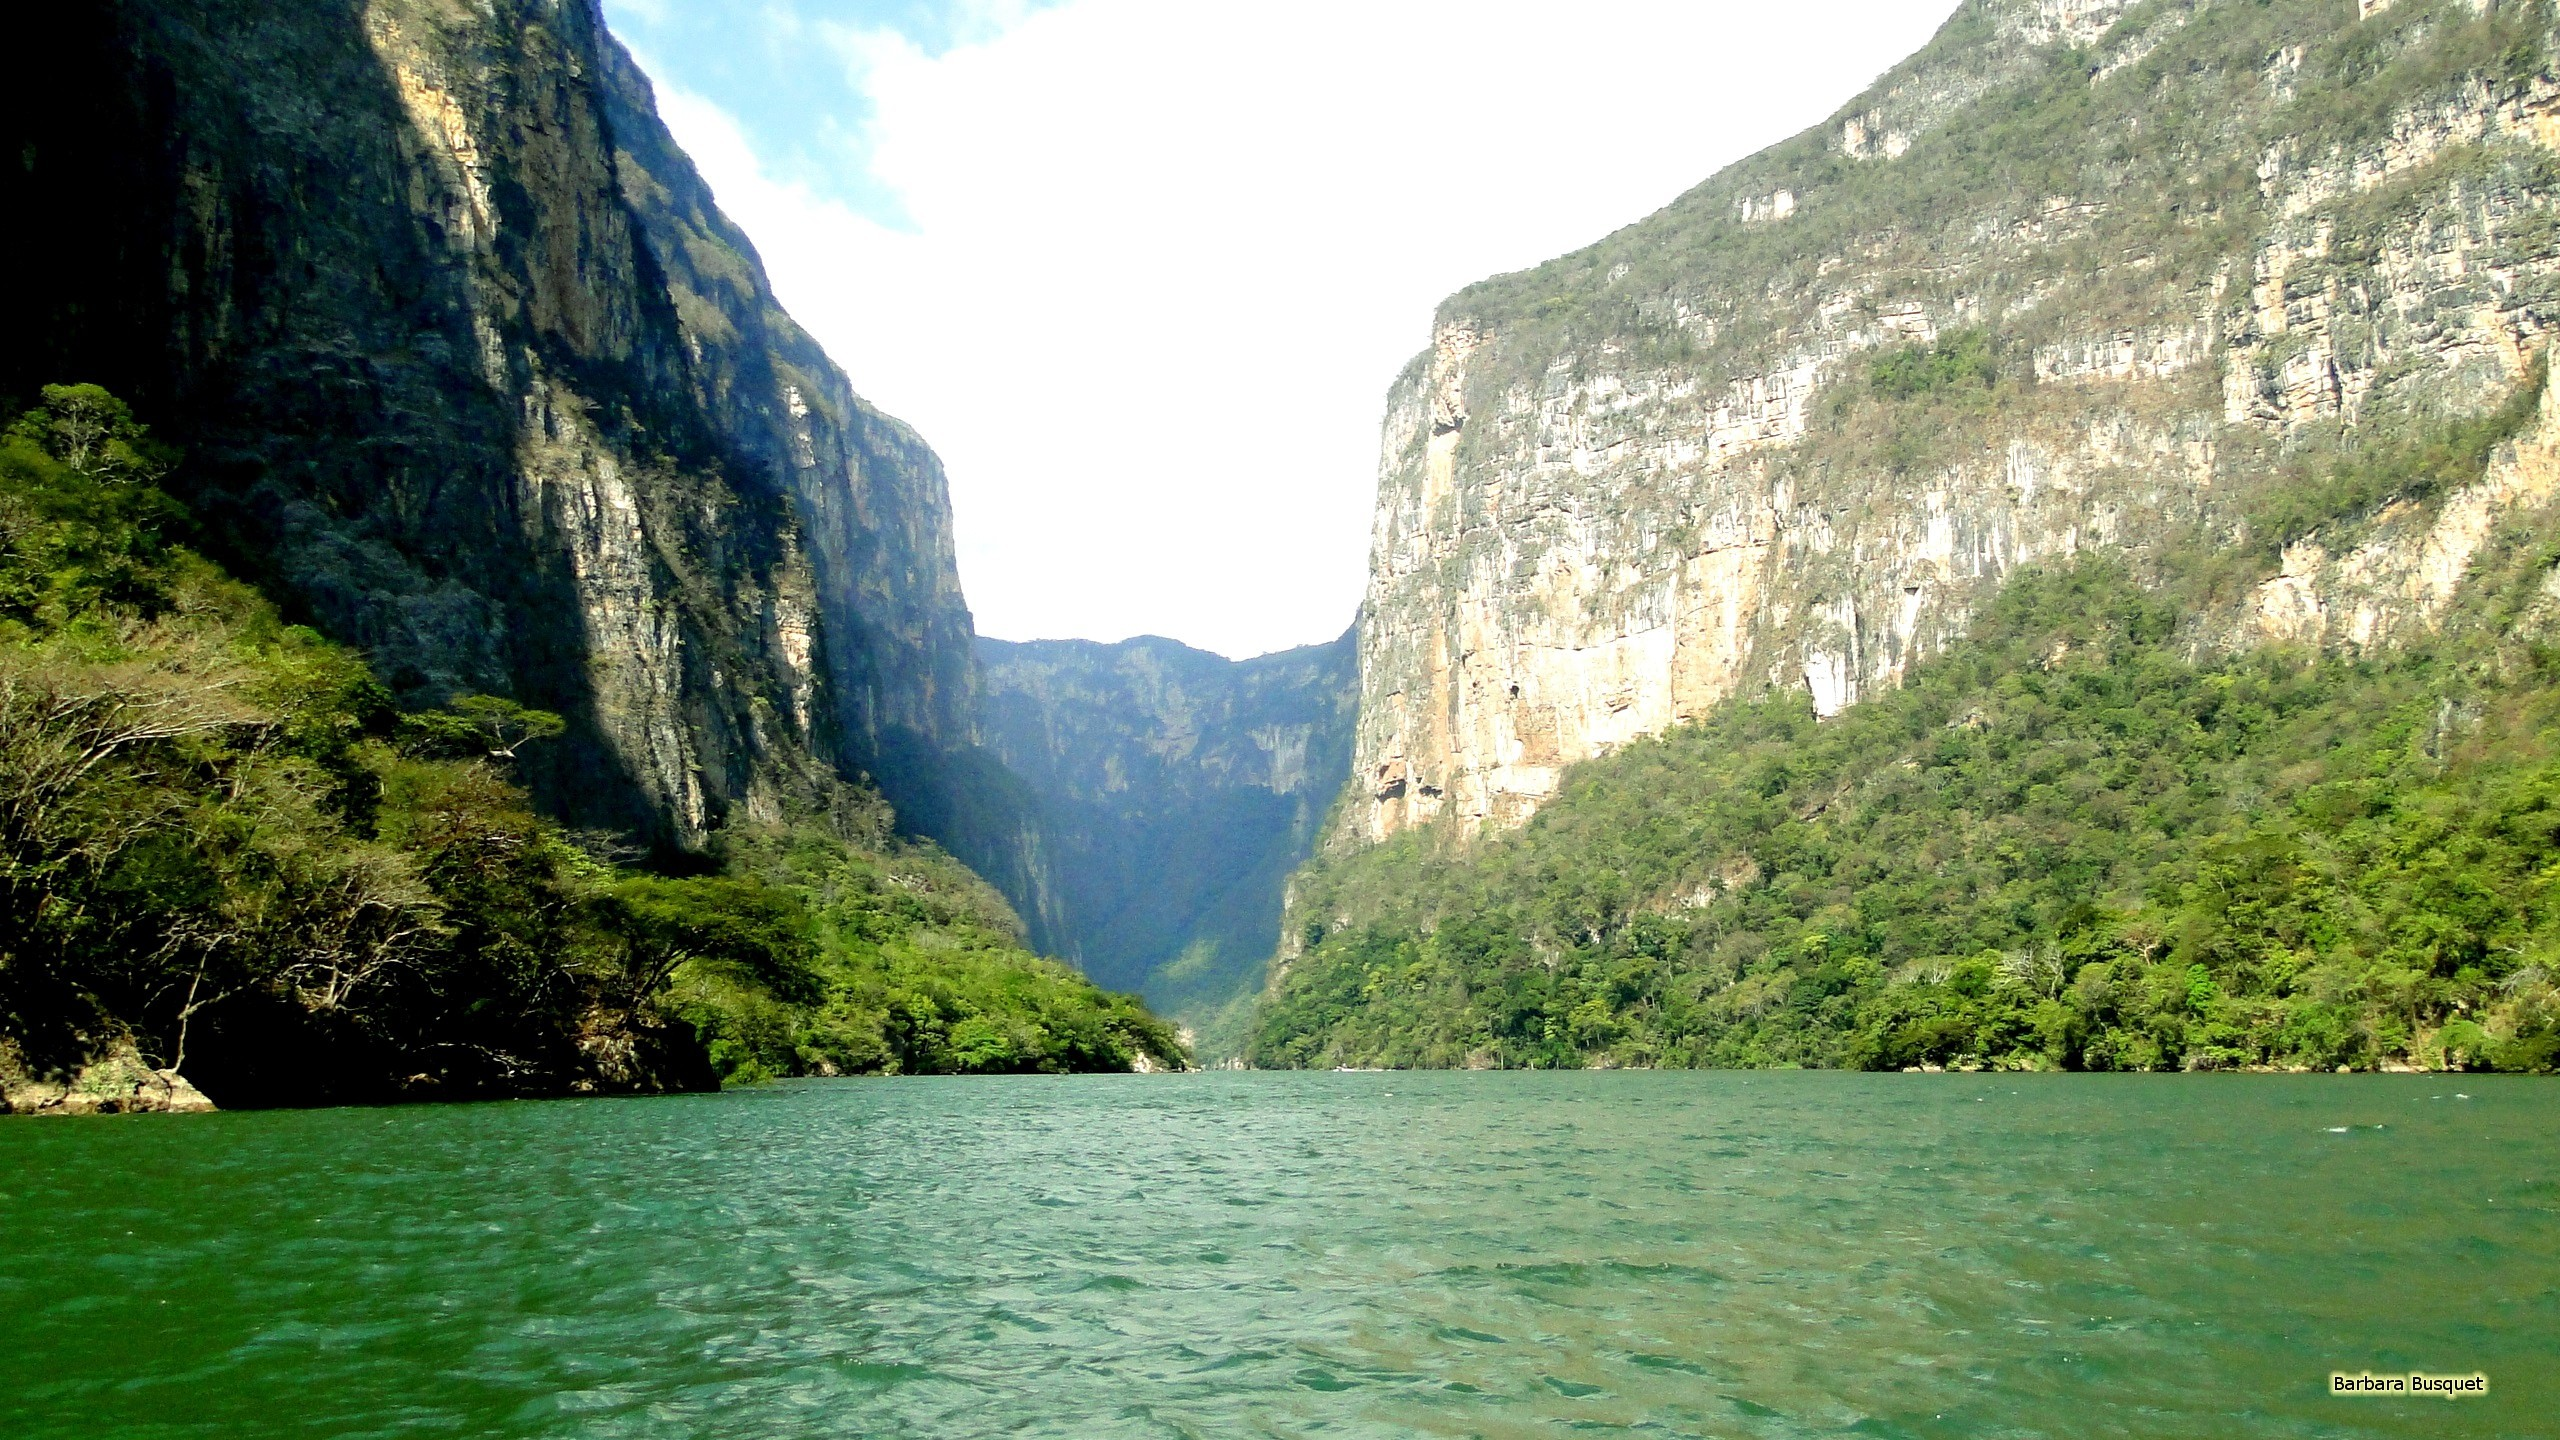 2560x1440 Wallpaper with the Sumidero Canyon in Mexico